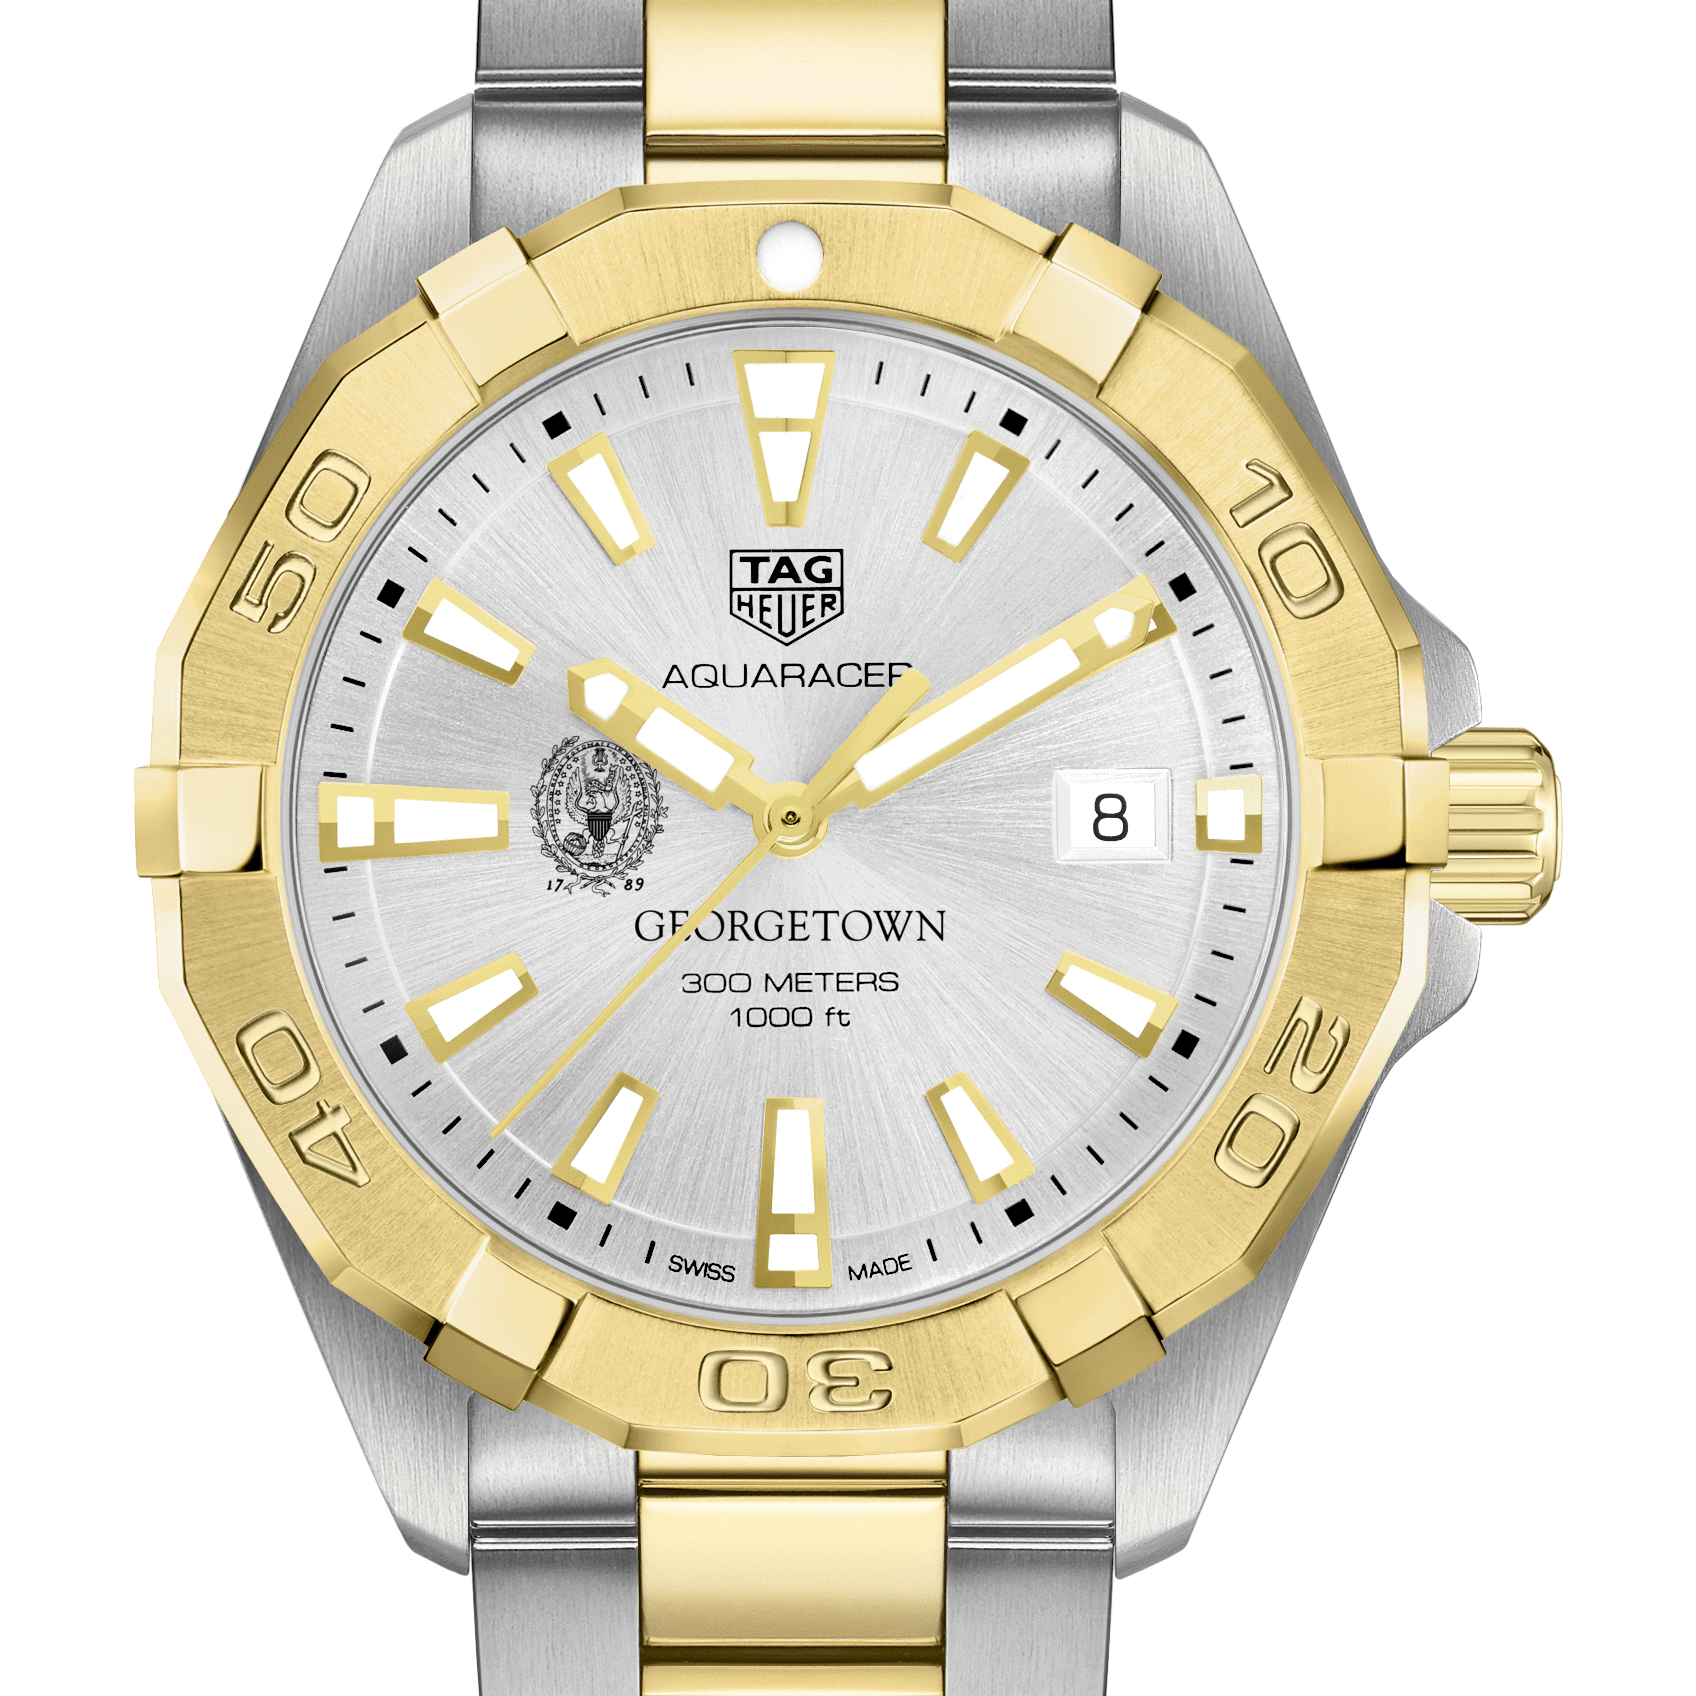 Georgetown Men's TAG Heuer Two-Tone Aquaracer